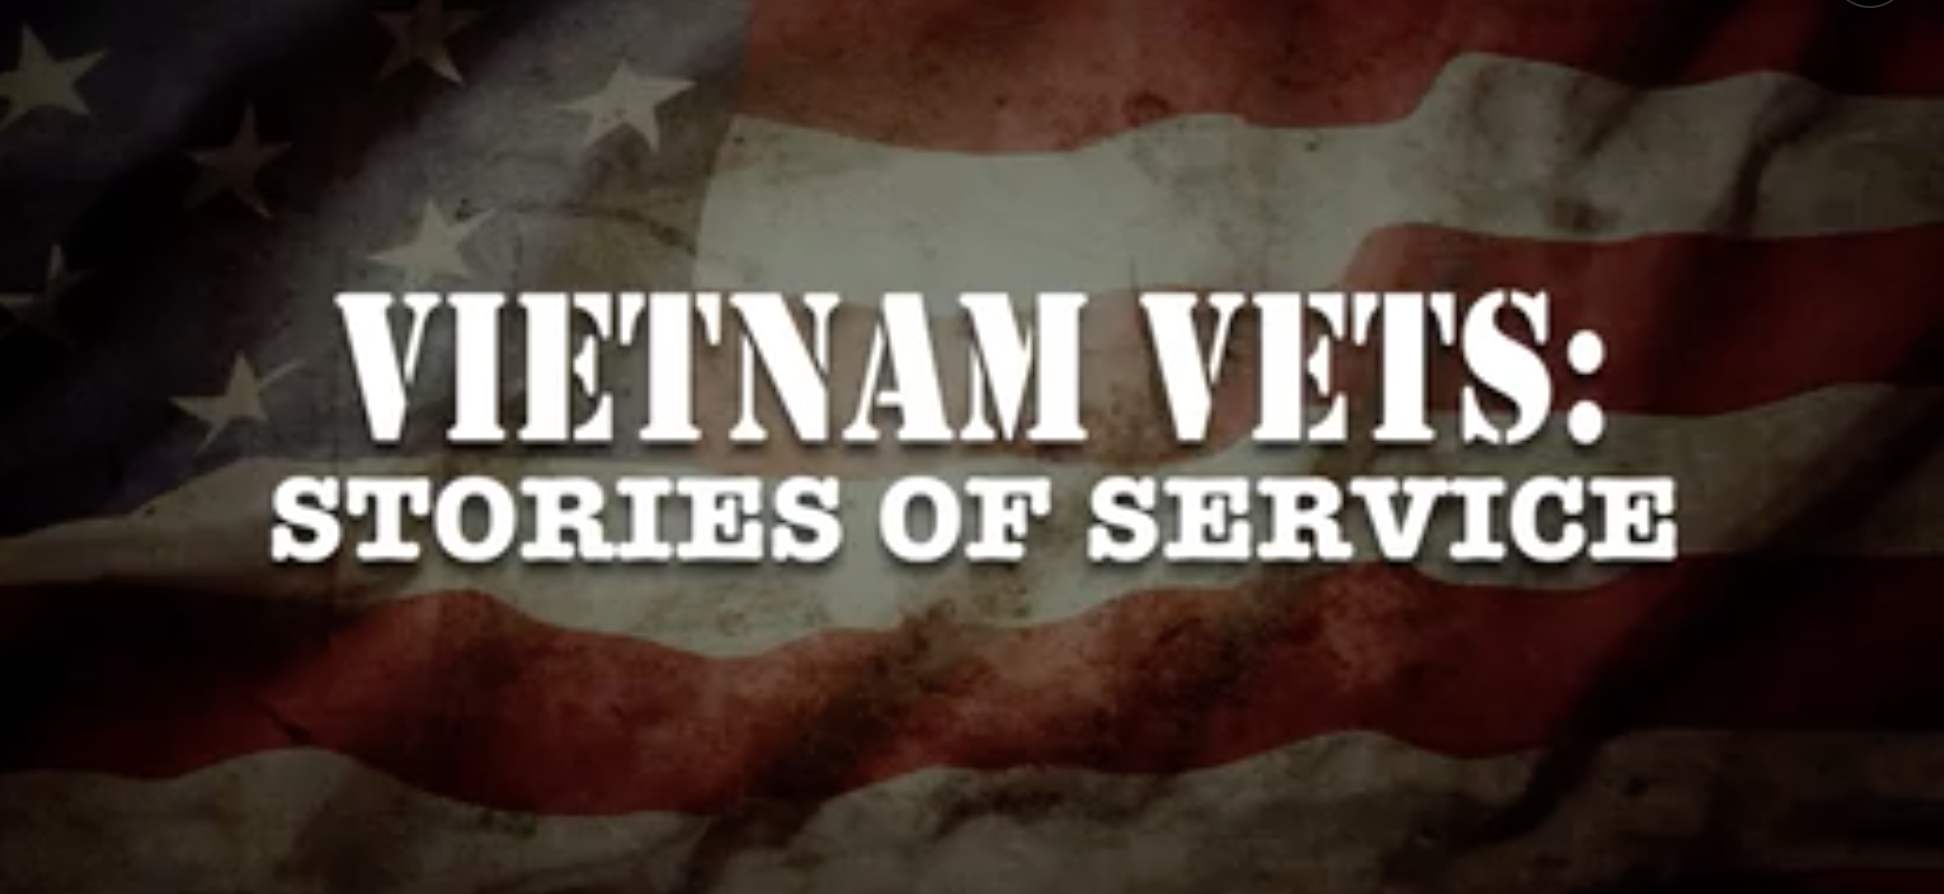 Vietnam VETS: Stories of Service